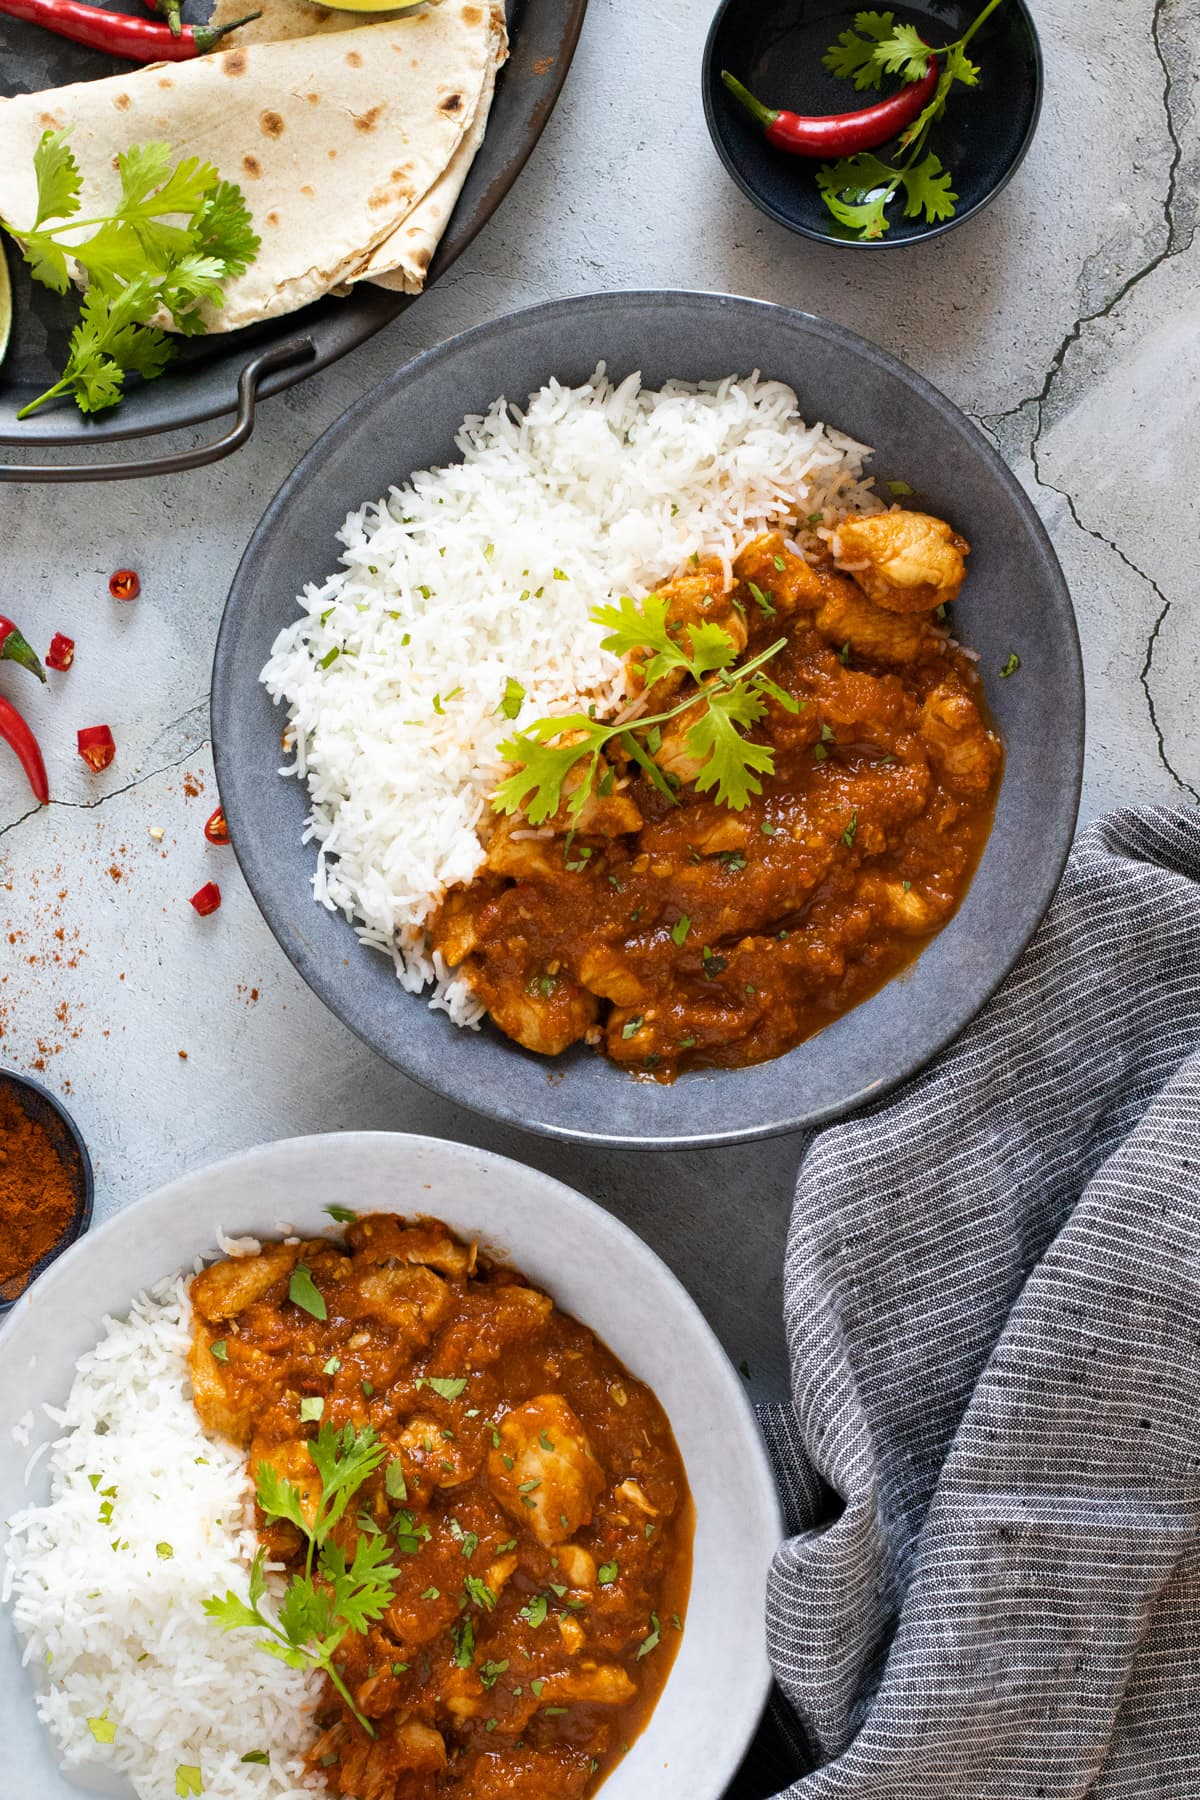 Chicken pathia in bowls with rice and coriander